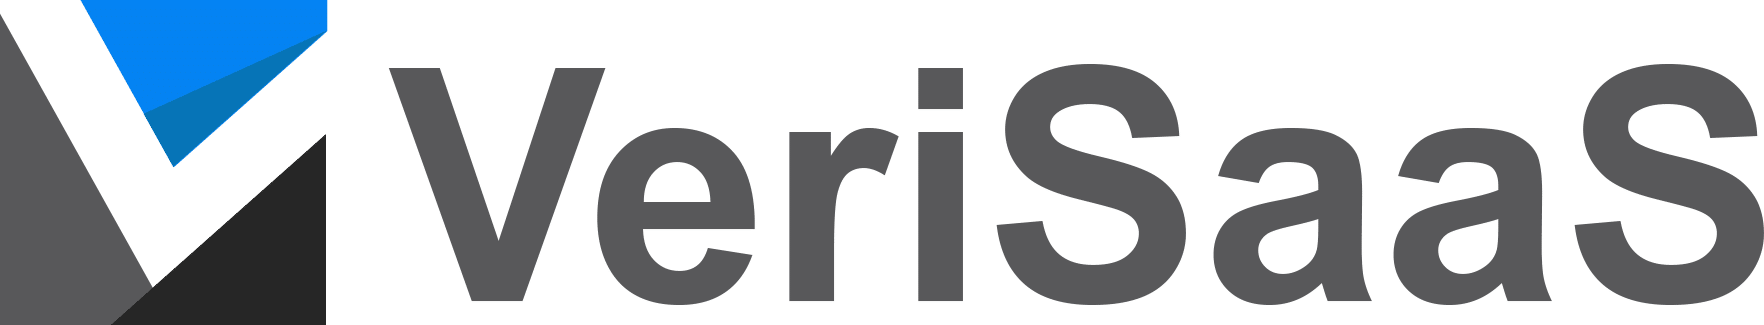 VeriSaaS Corporate Logo